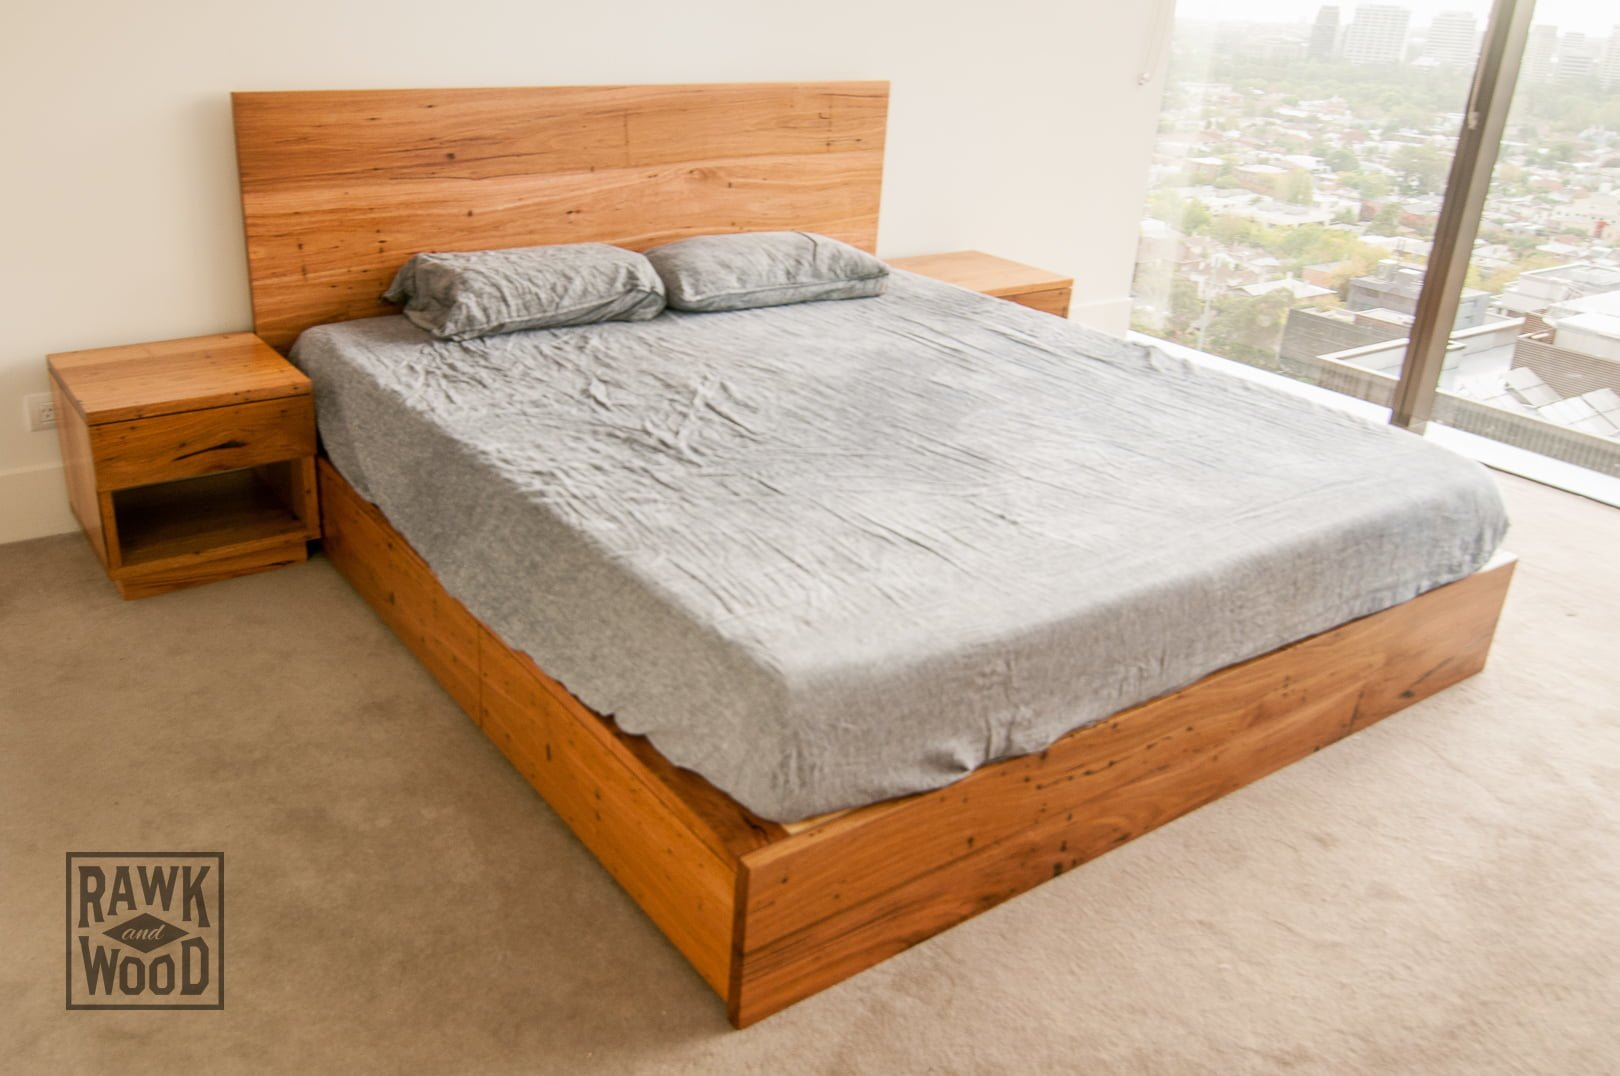 recycled-timber-storage-bed, made in Melbourne by Rawk and Wood